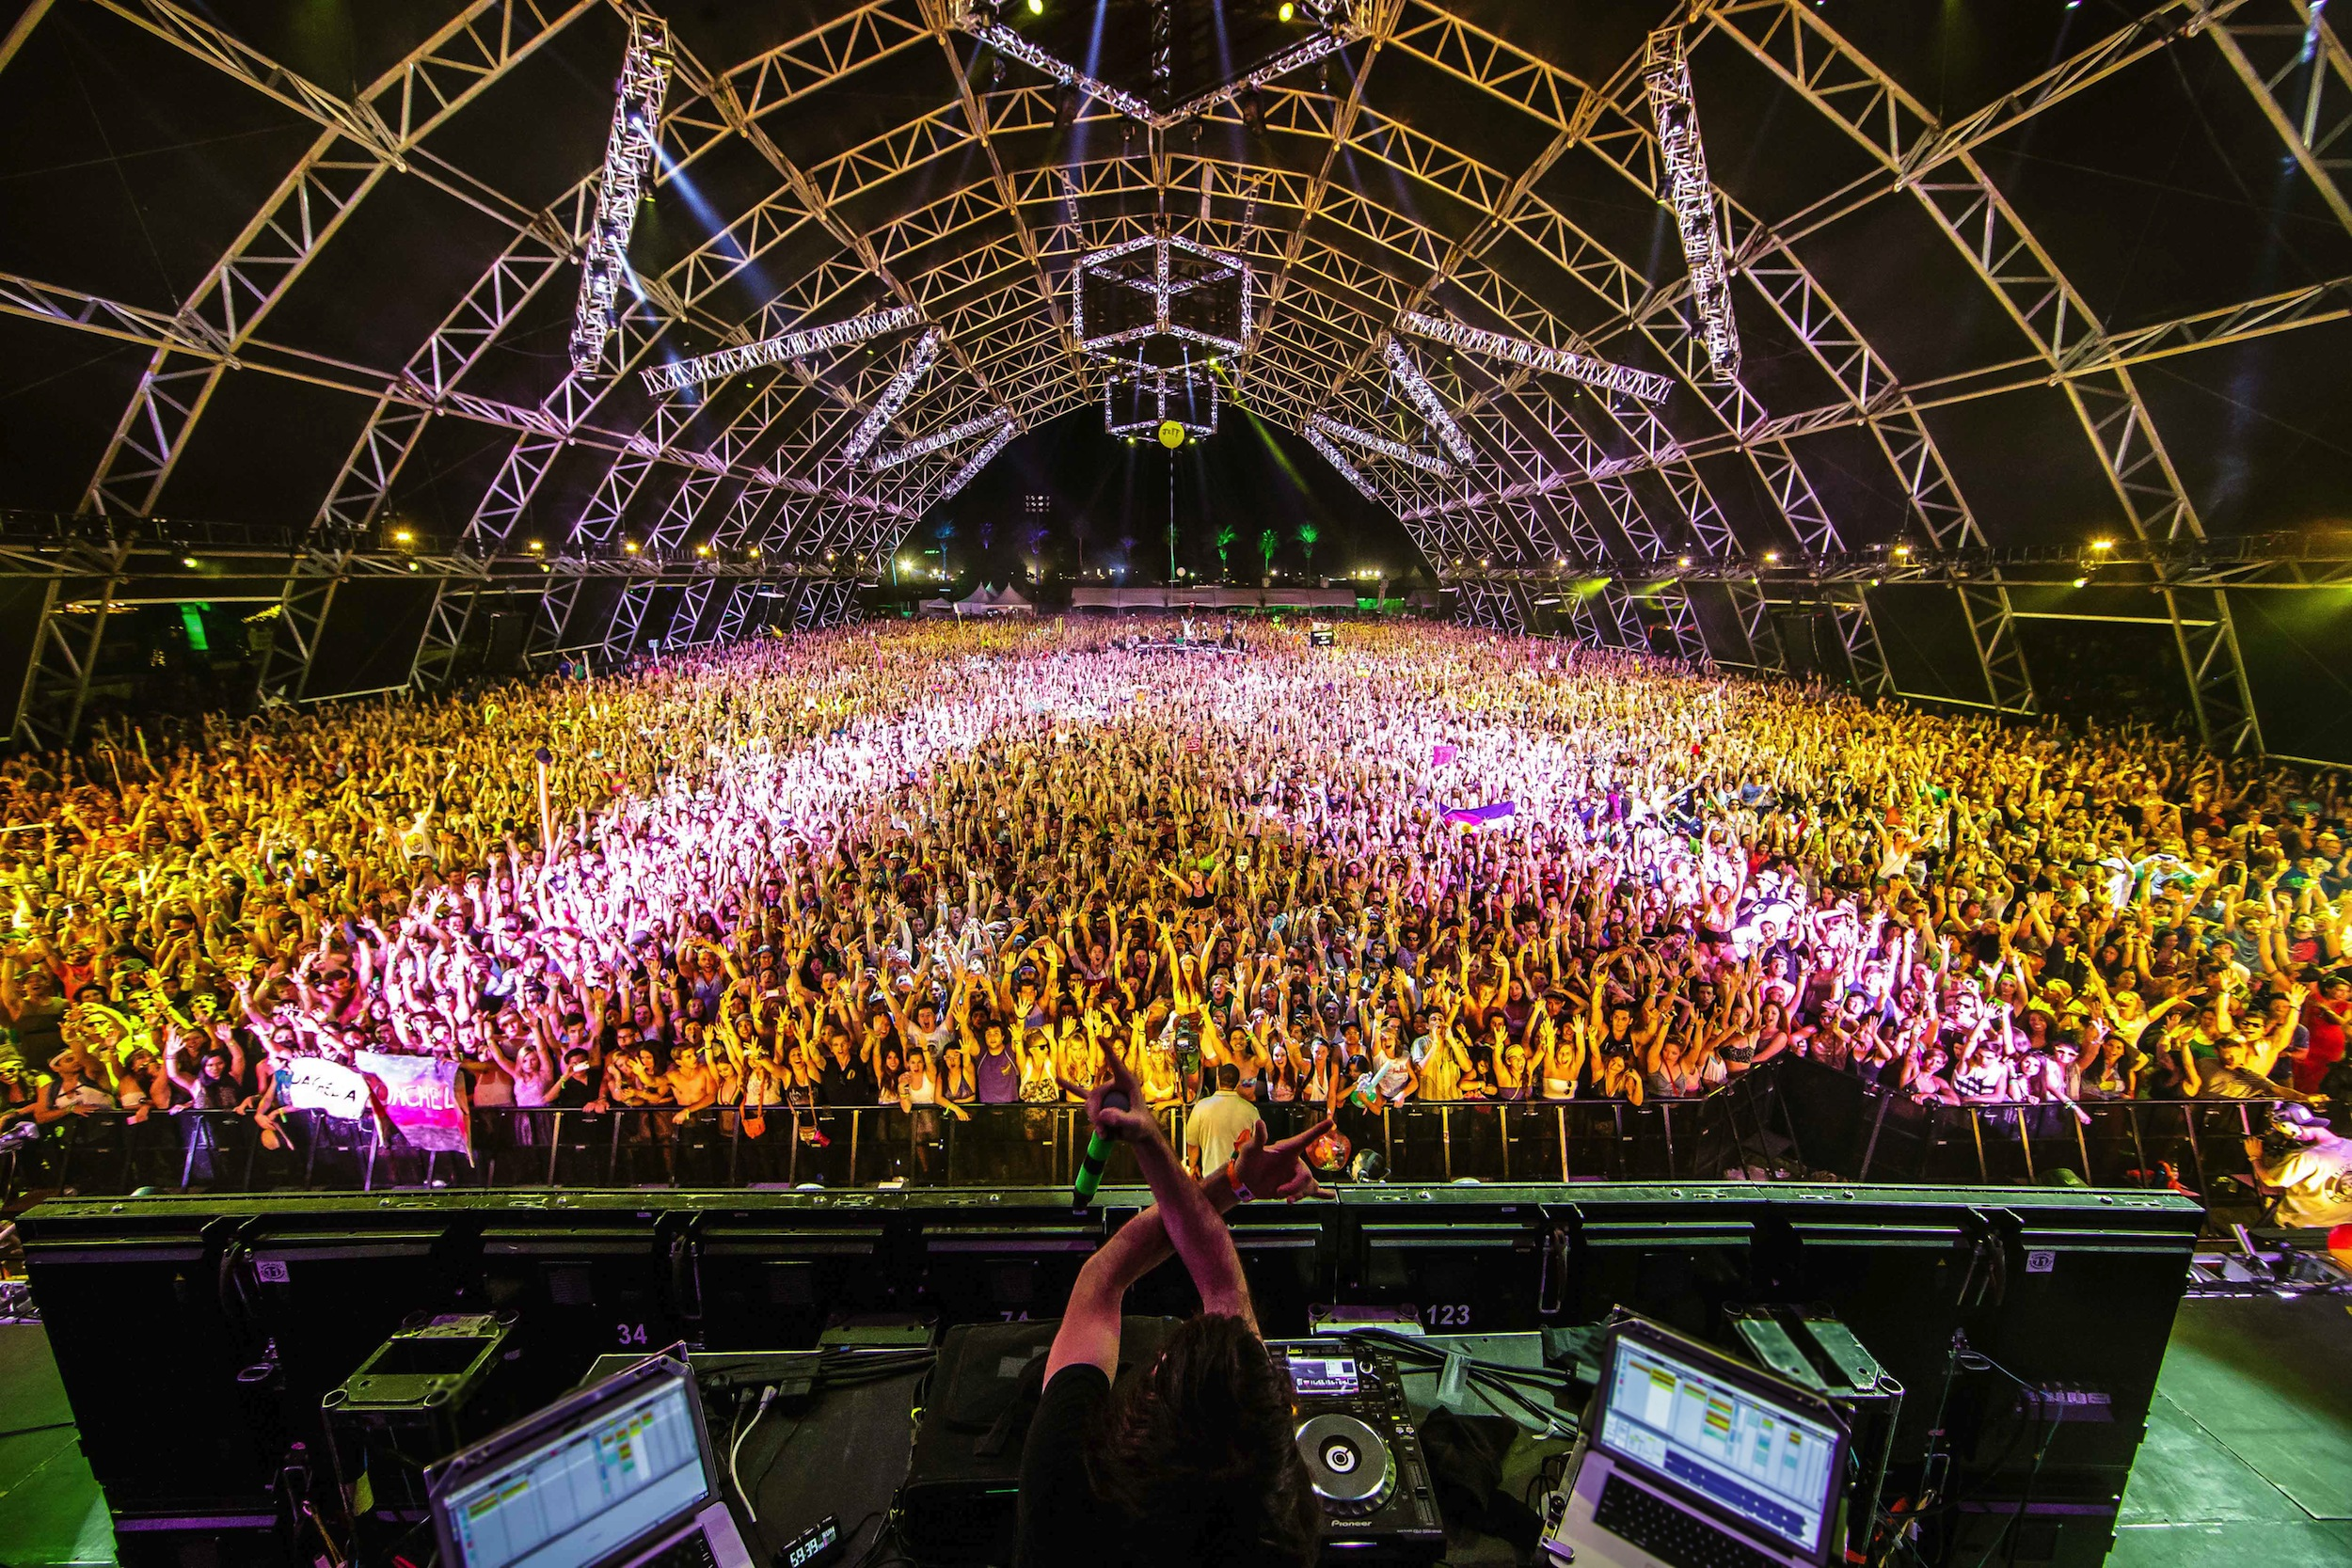 Why I don't mind missing Coachella this year